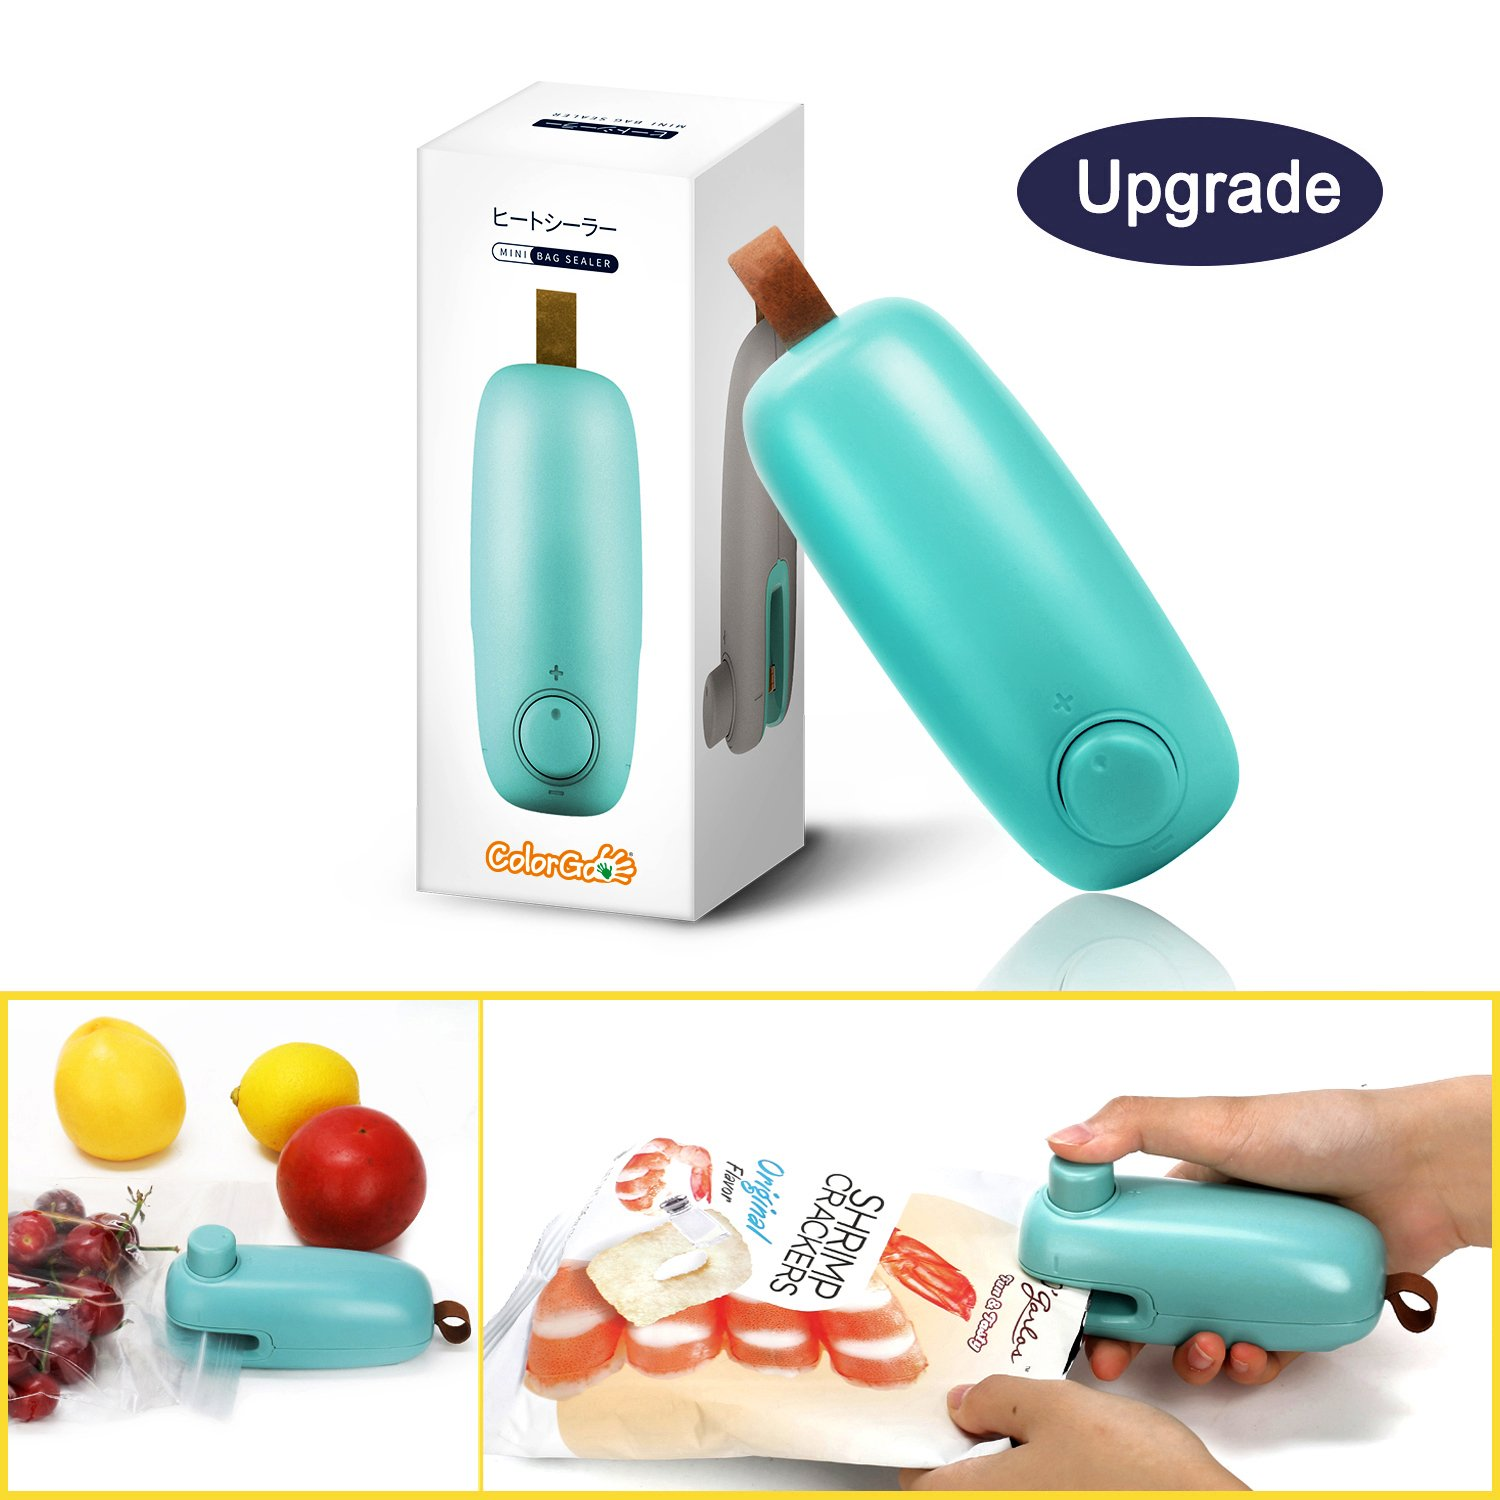 ColorGo BS2 Chip 2 in 1 Hand Held Mini Portable Heat Sealer for Plastic Bags Food Storage Resealer with Safety Lock, Mint Green